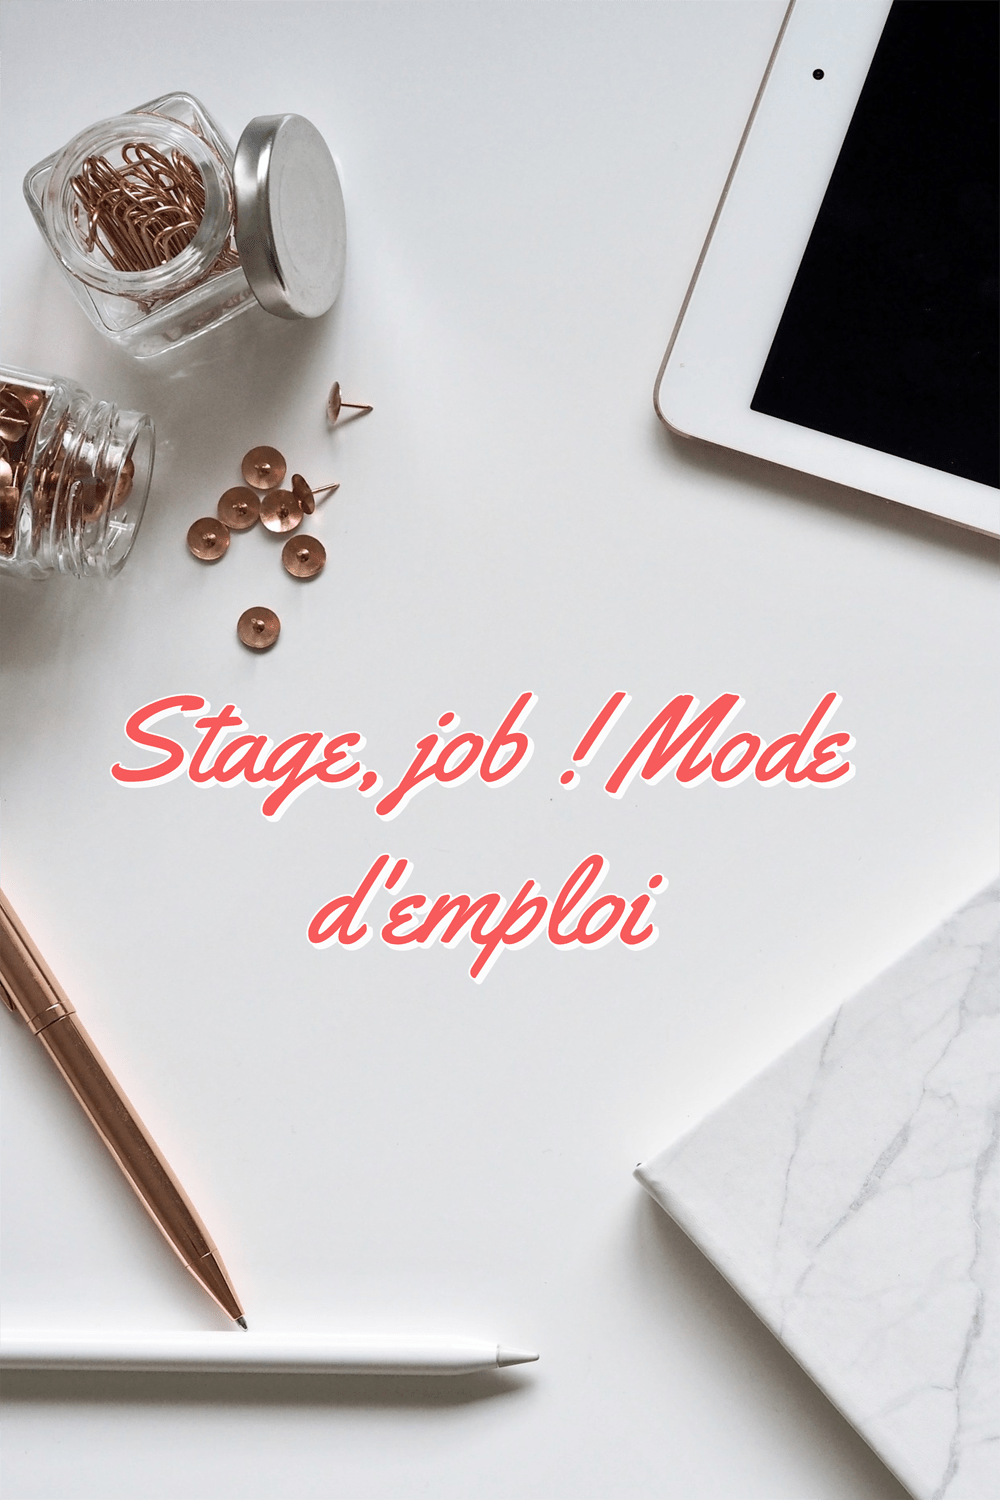 stage, job ! Mode d'emploi (1)